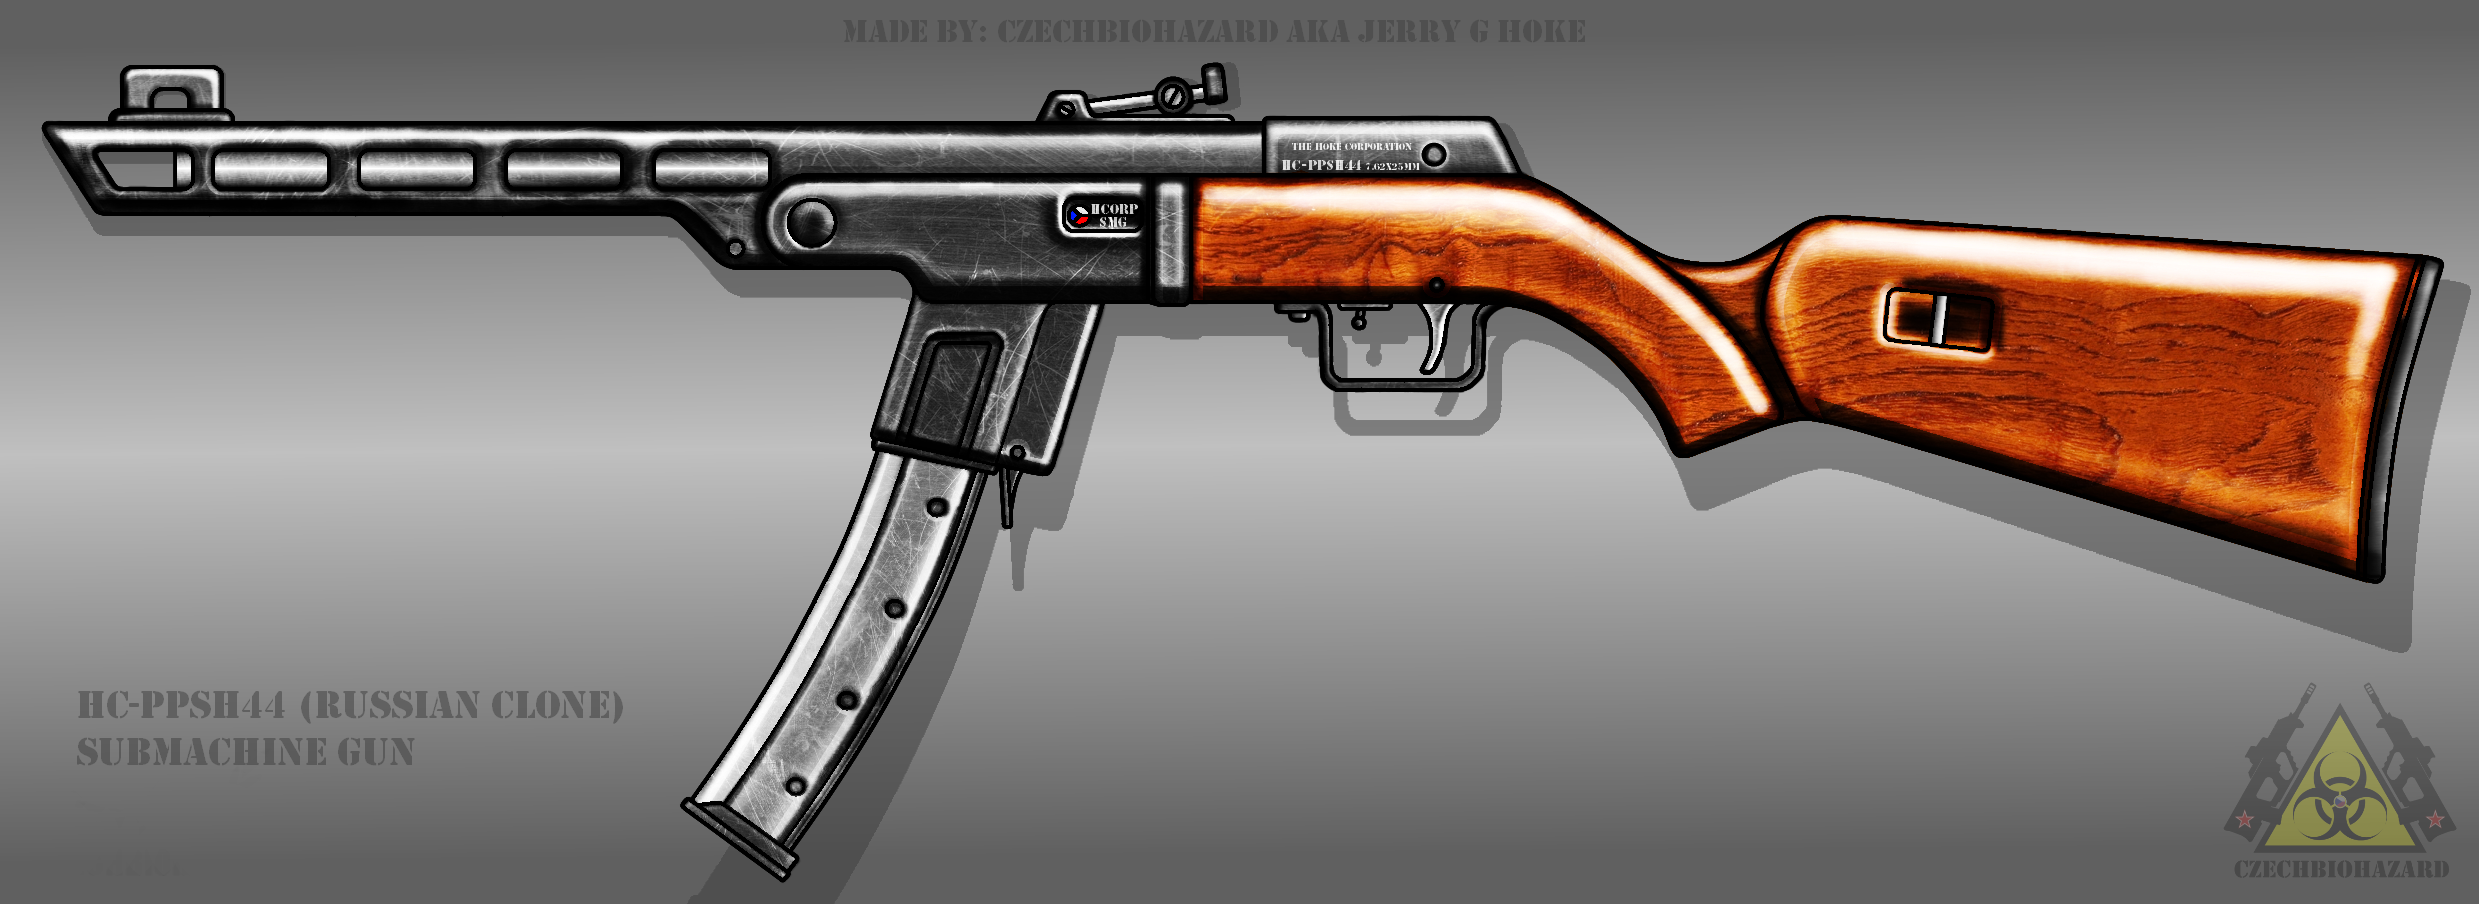 Fictional Firearm: HC-PPSH44 Submachine Gun by CzechBiohazard